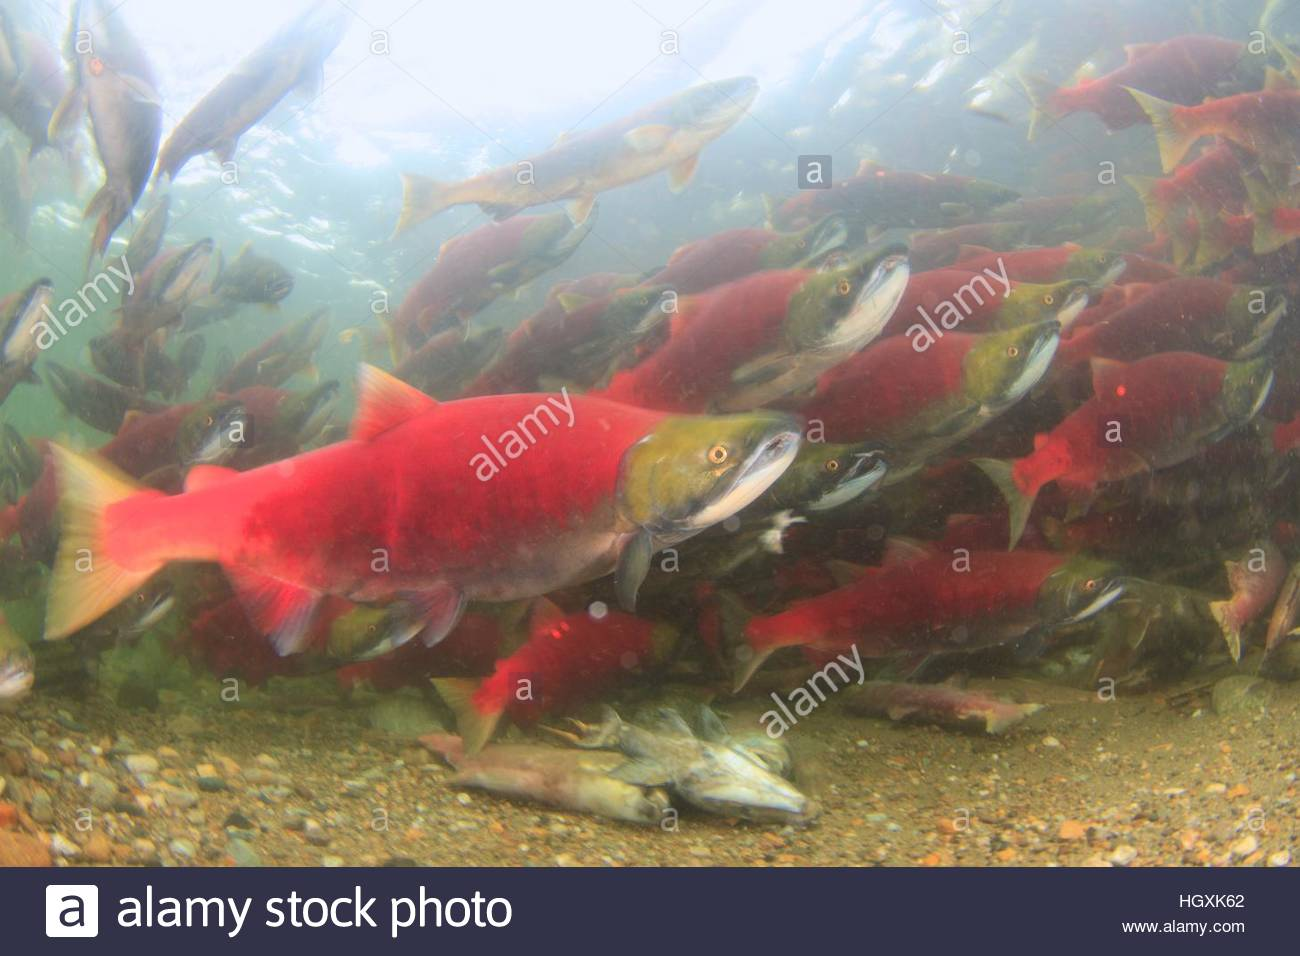 Bright Red Fish Stock Photos & Bright Red Fish Stock Images - Alamy